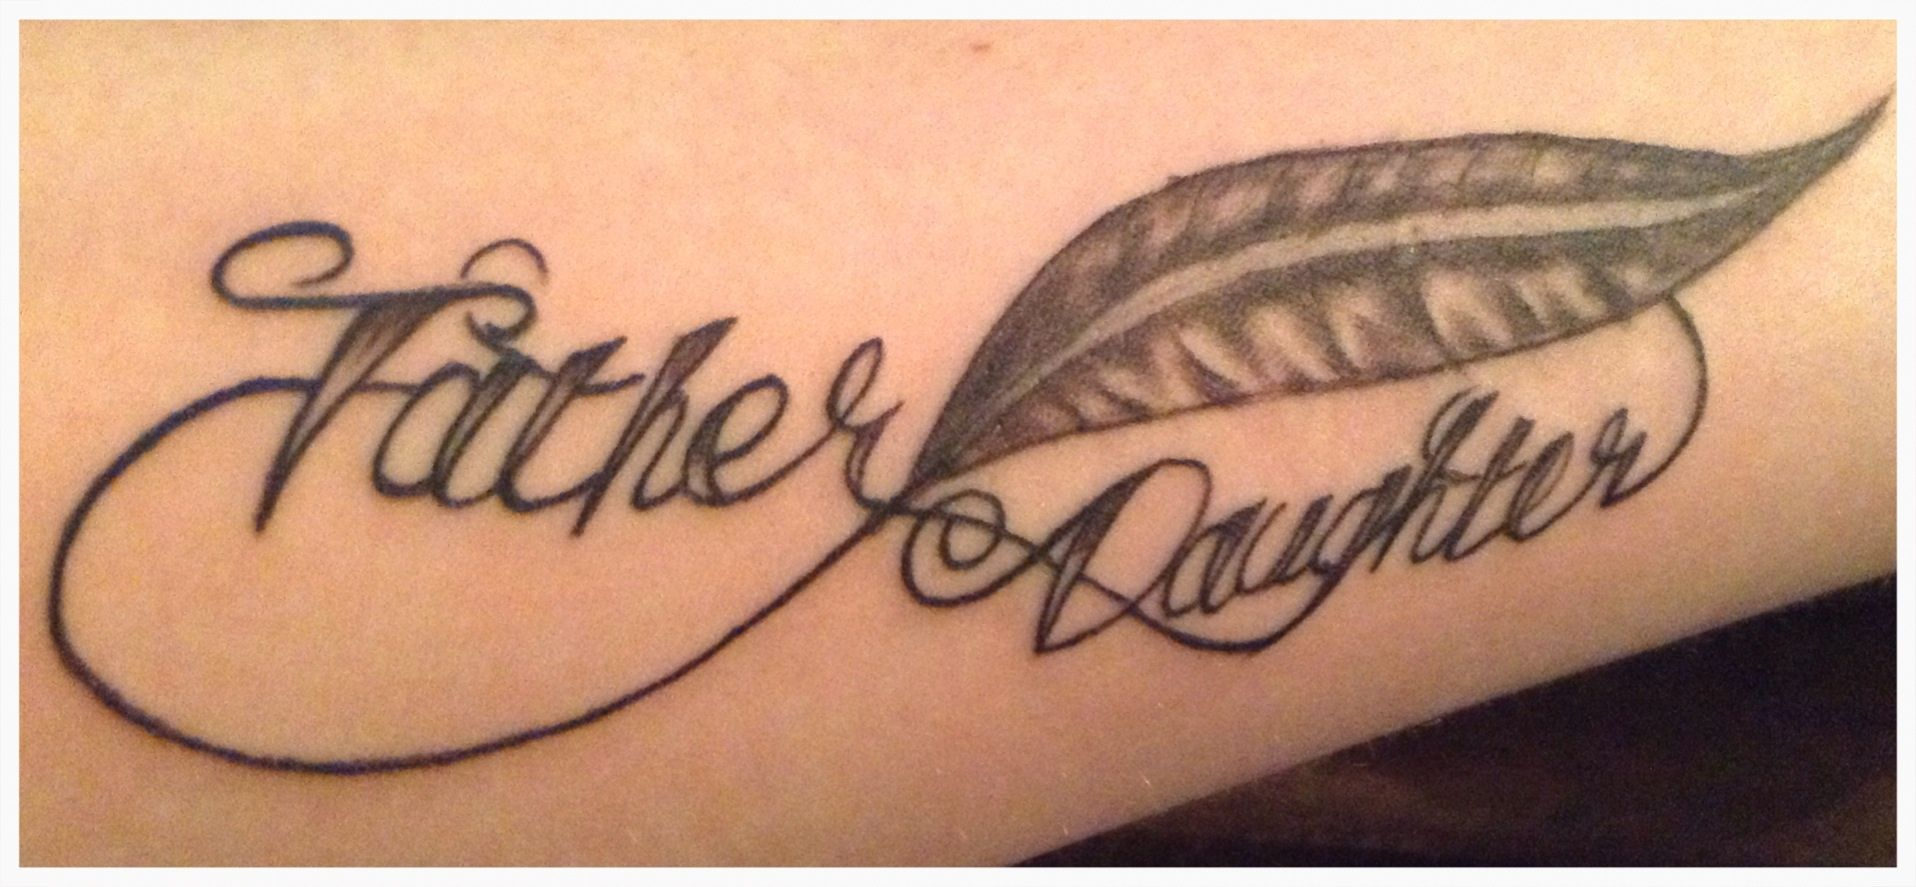 My father daughter tattoo … | Tattoo ideas | Tattoos for ...